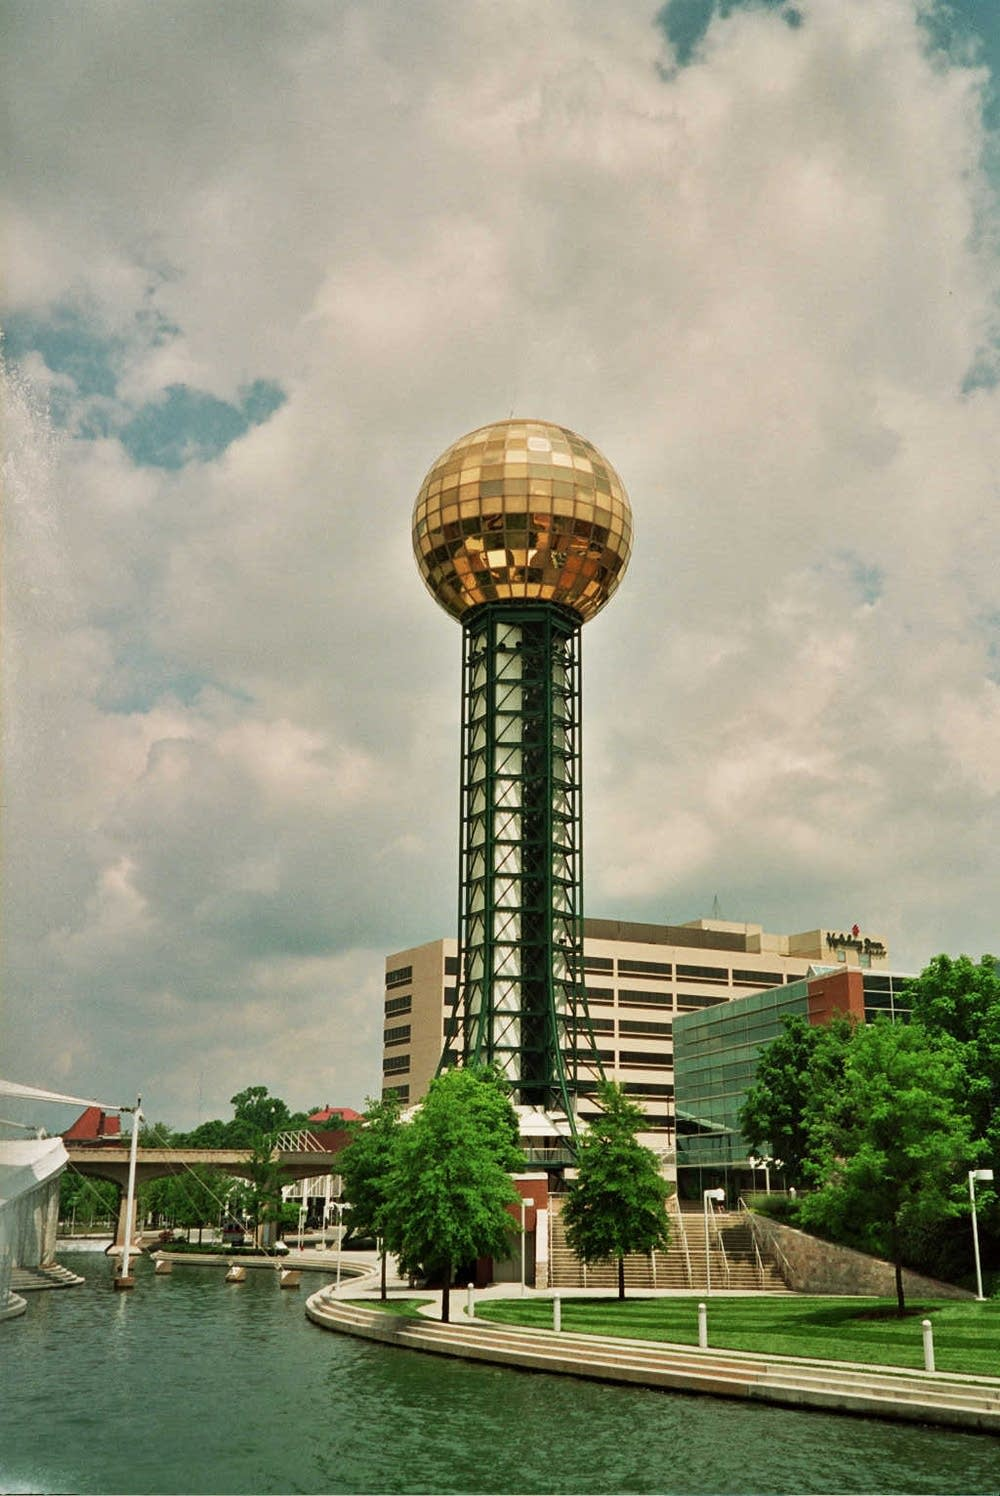 World's Fair Sunsphere in Knoxville